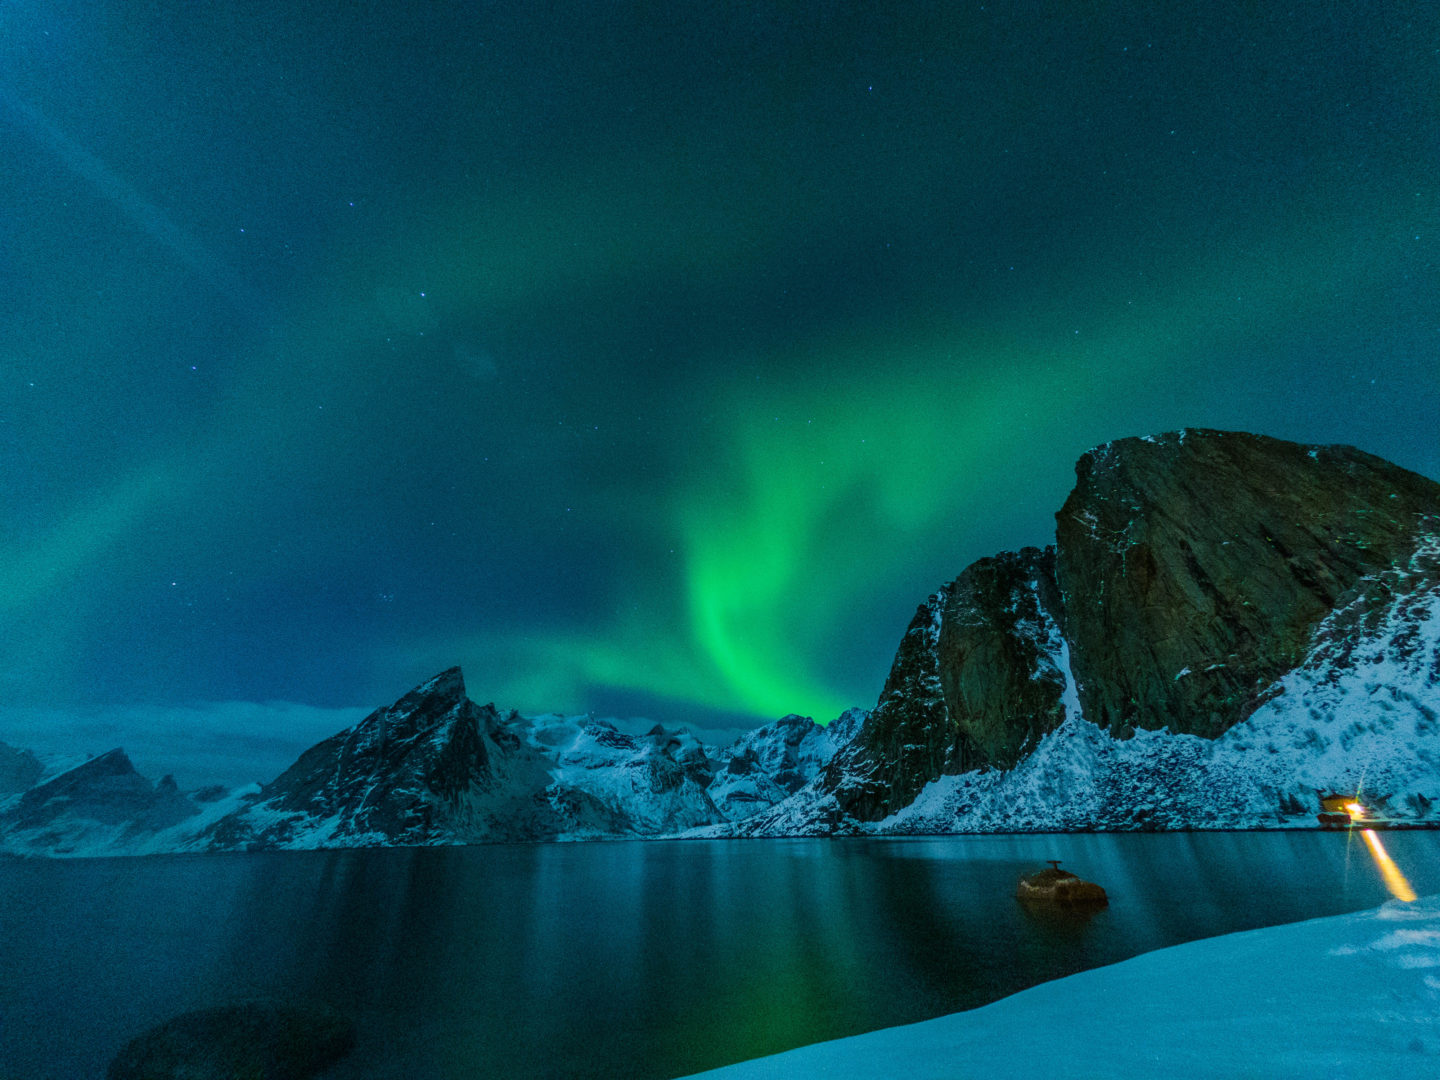 What is the best time to see the Northern Lights in Norway?